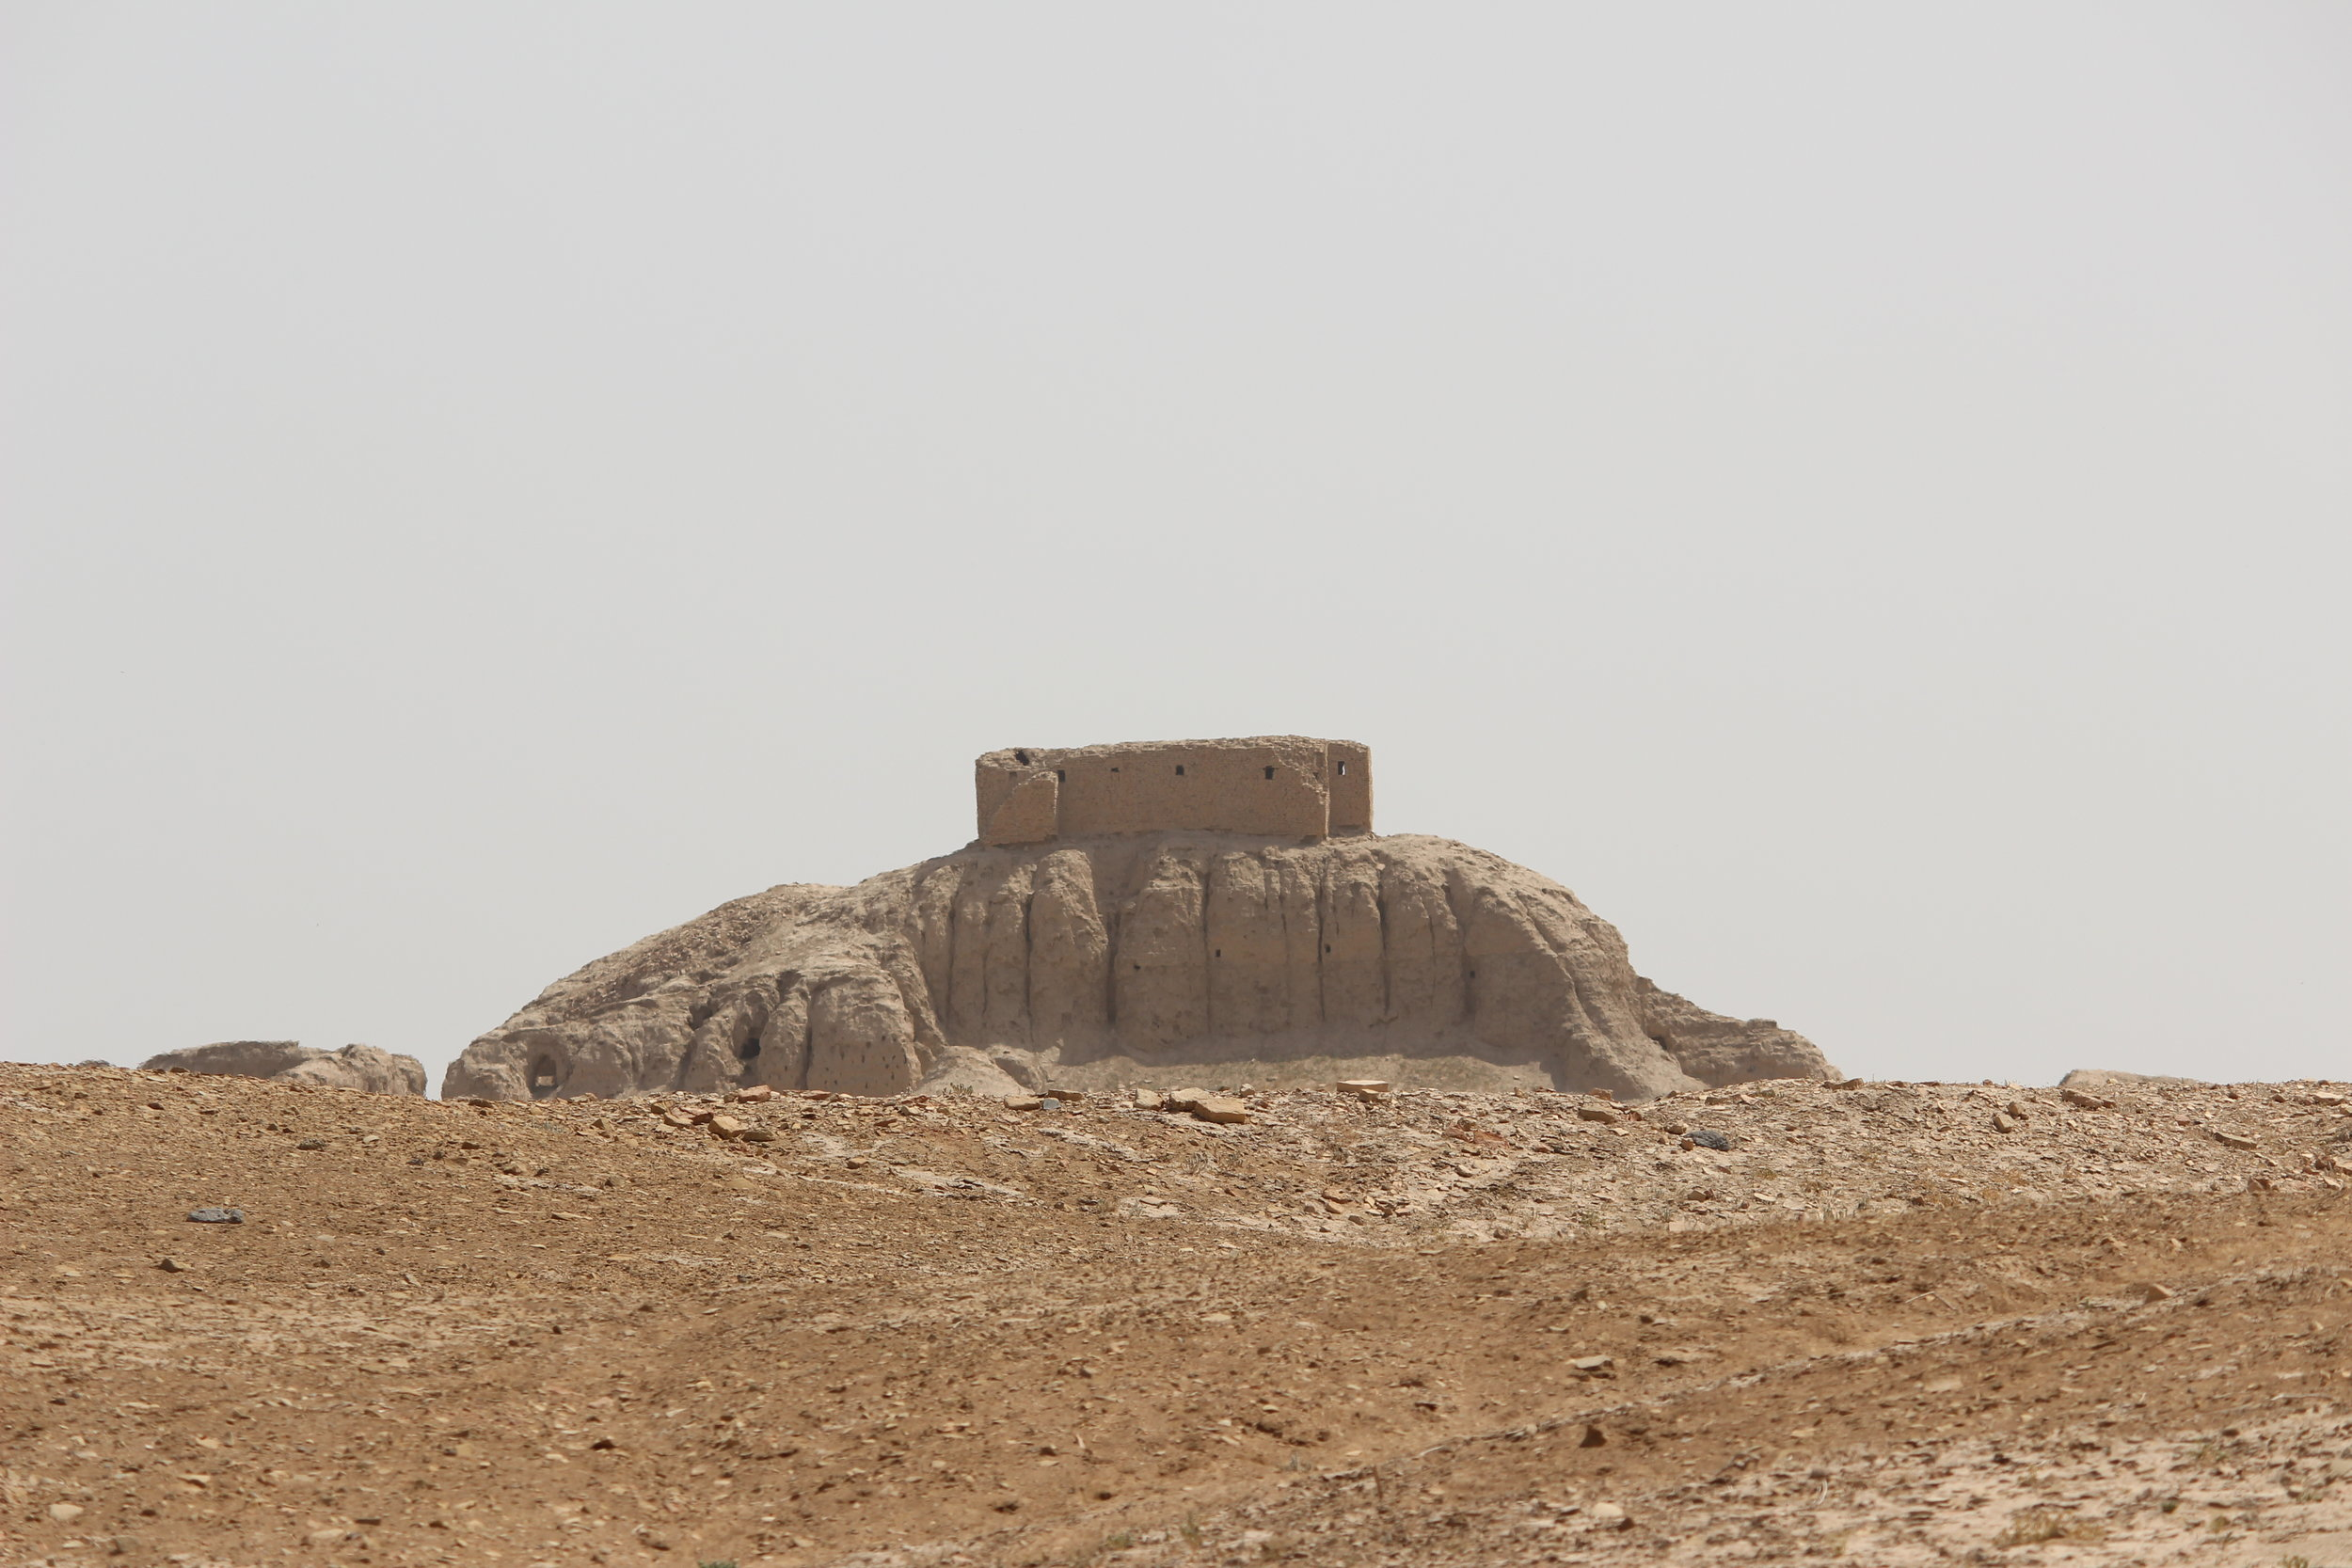 Iraq landscape (Ihab March 2013) 19.jpg